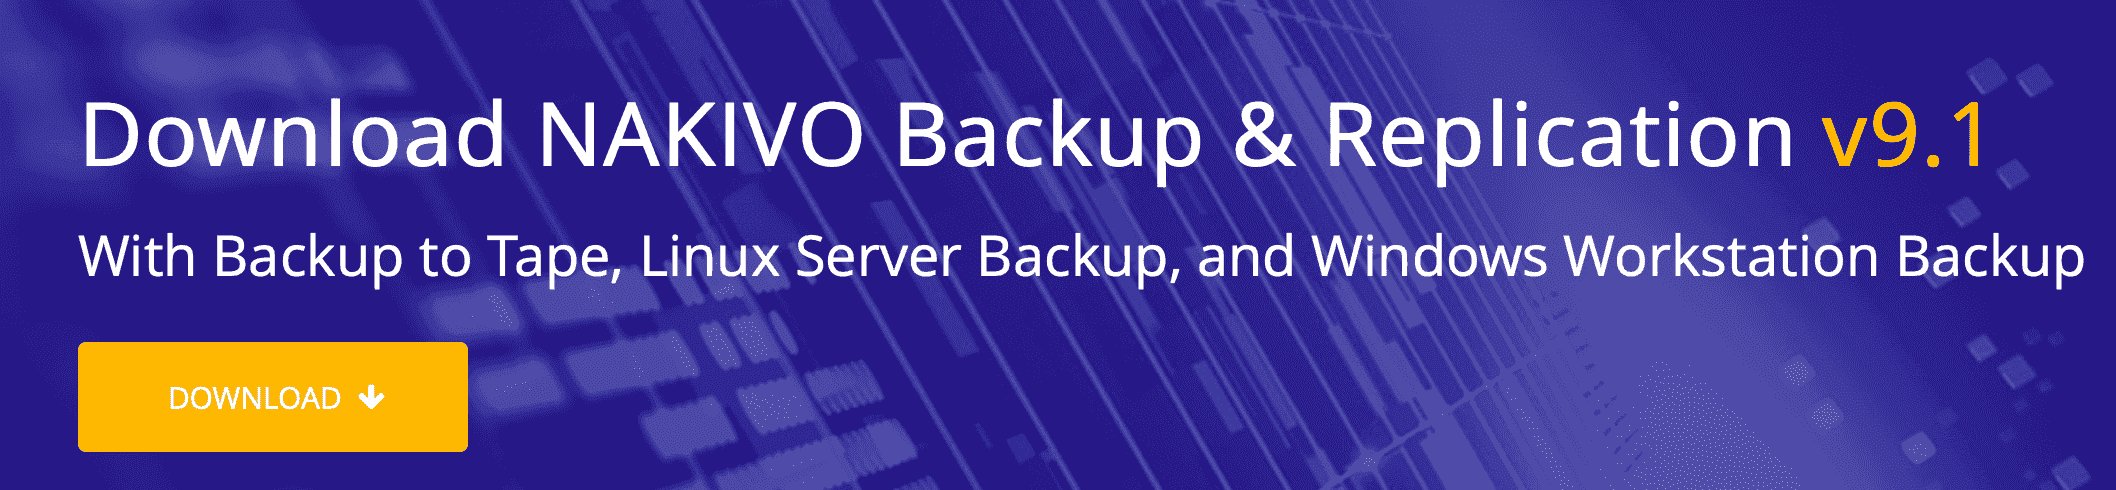 Download NAKIVO Backup & Replication v9.1